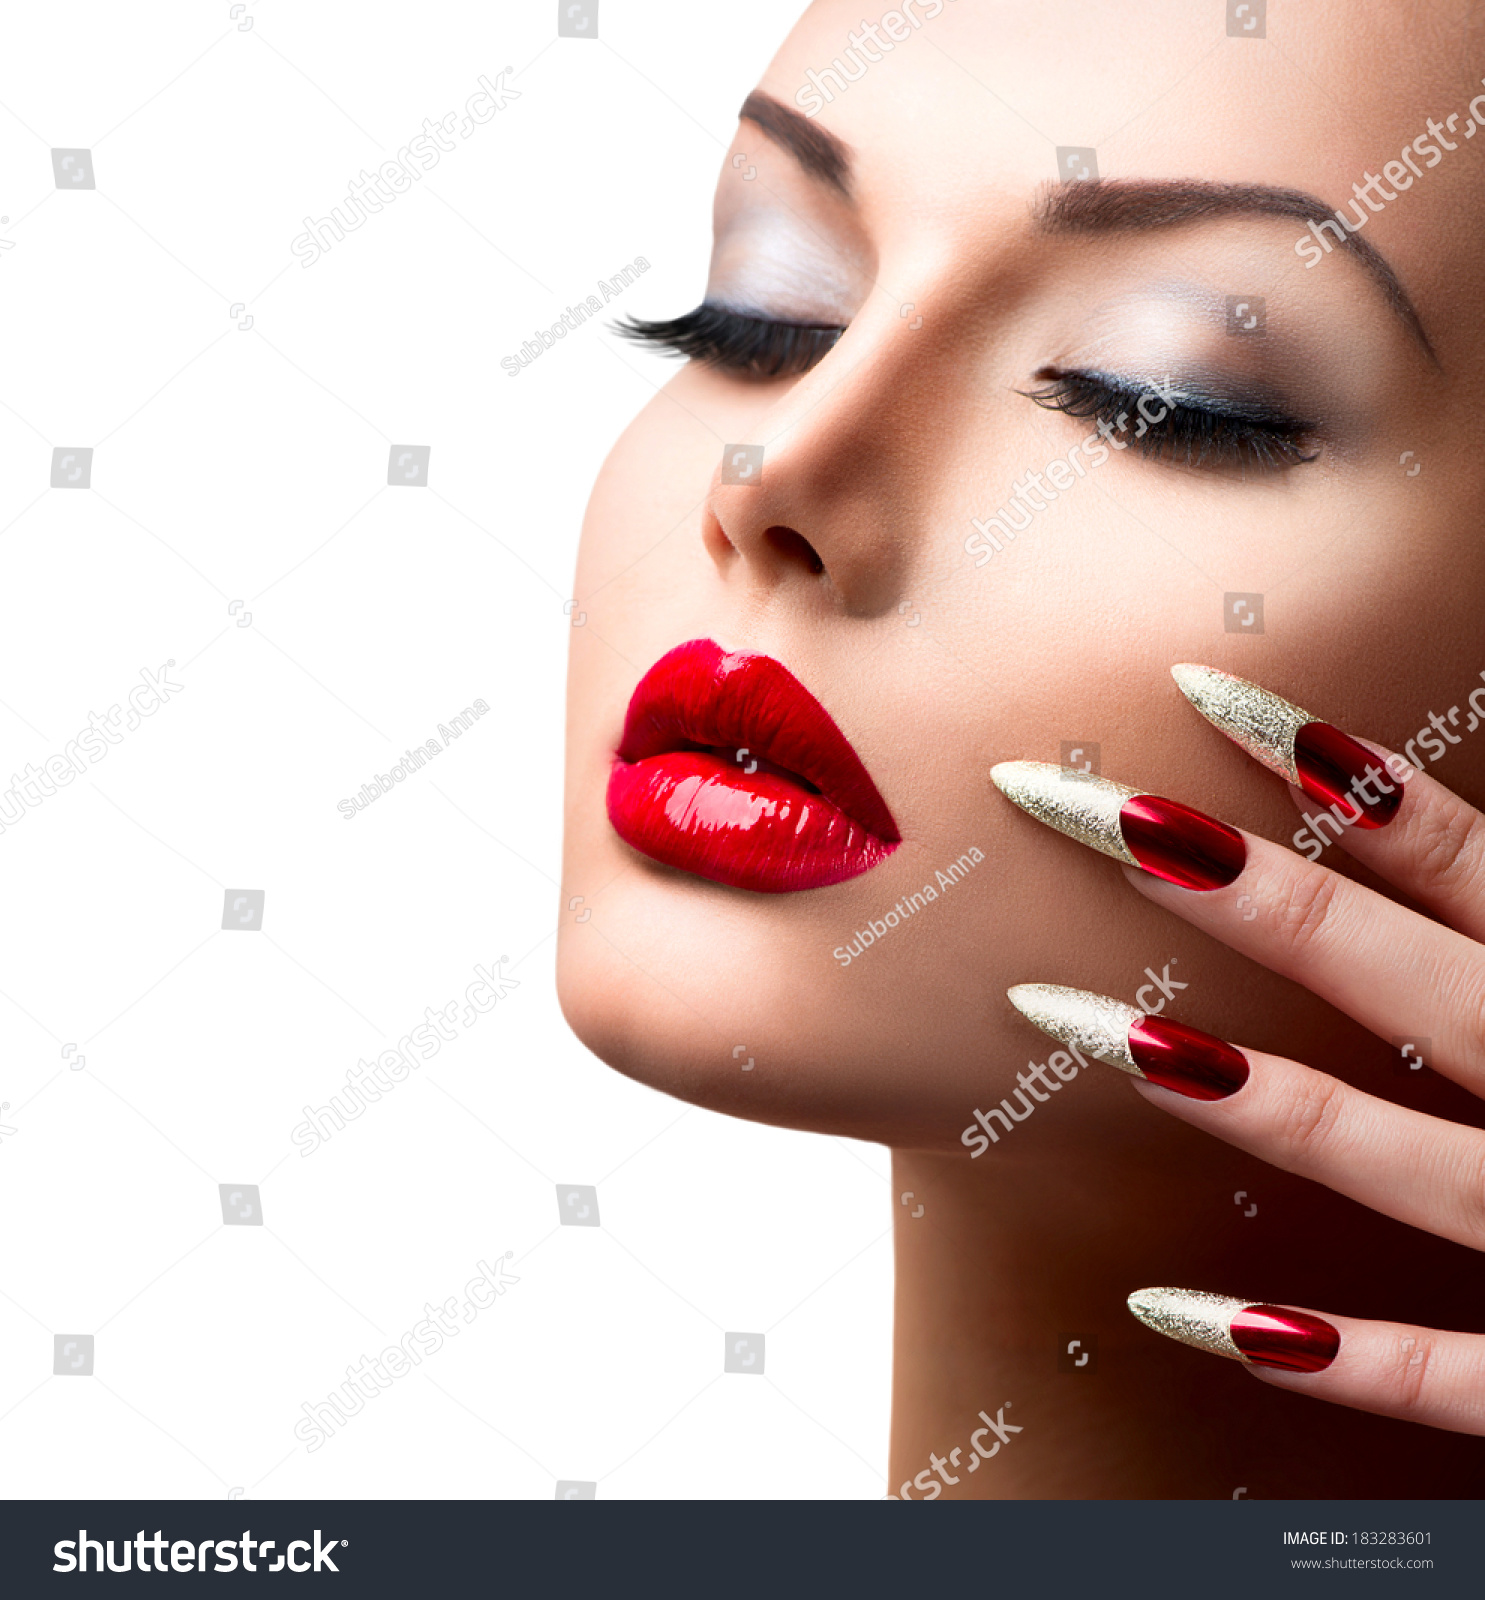 Fashion Beauty Model Girl Manicure Makeup Stock Photo 183283601 Shutterstock